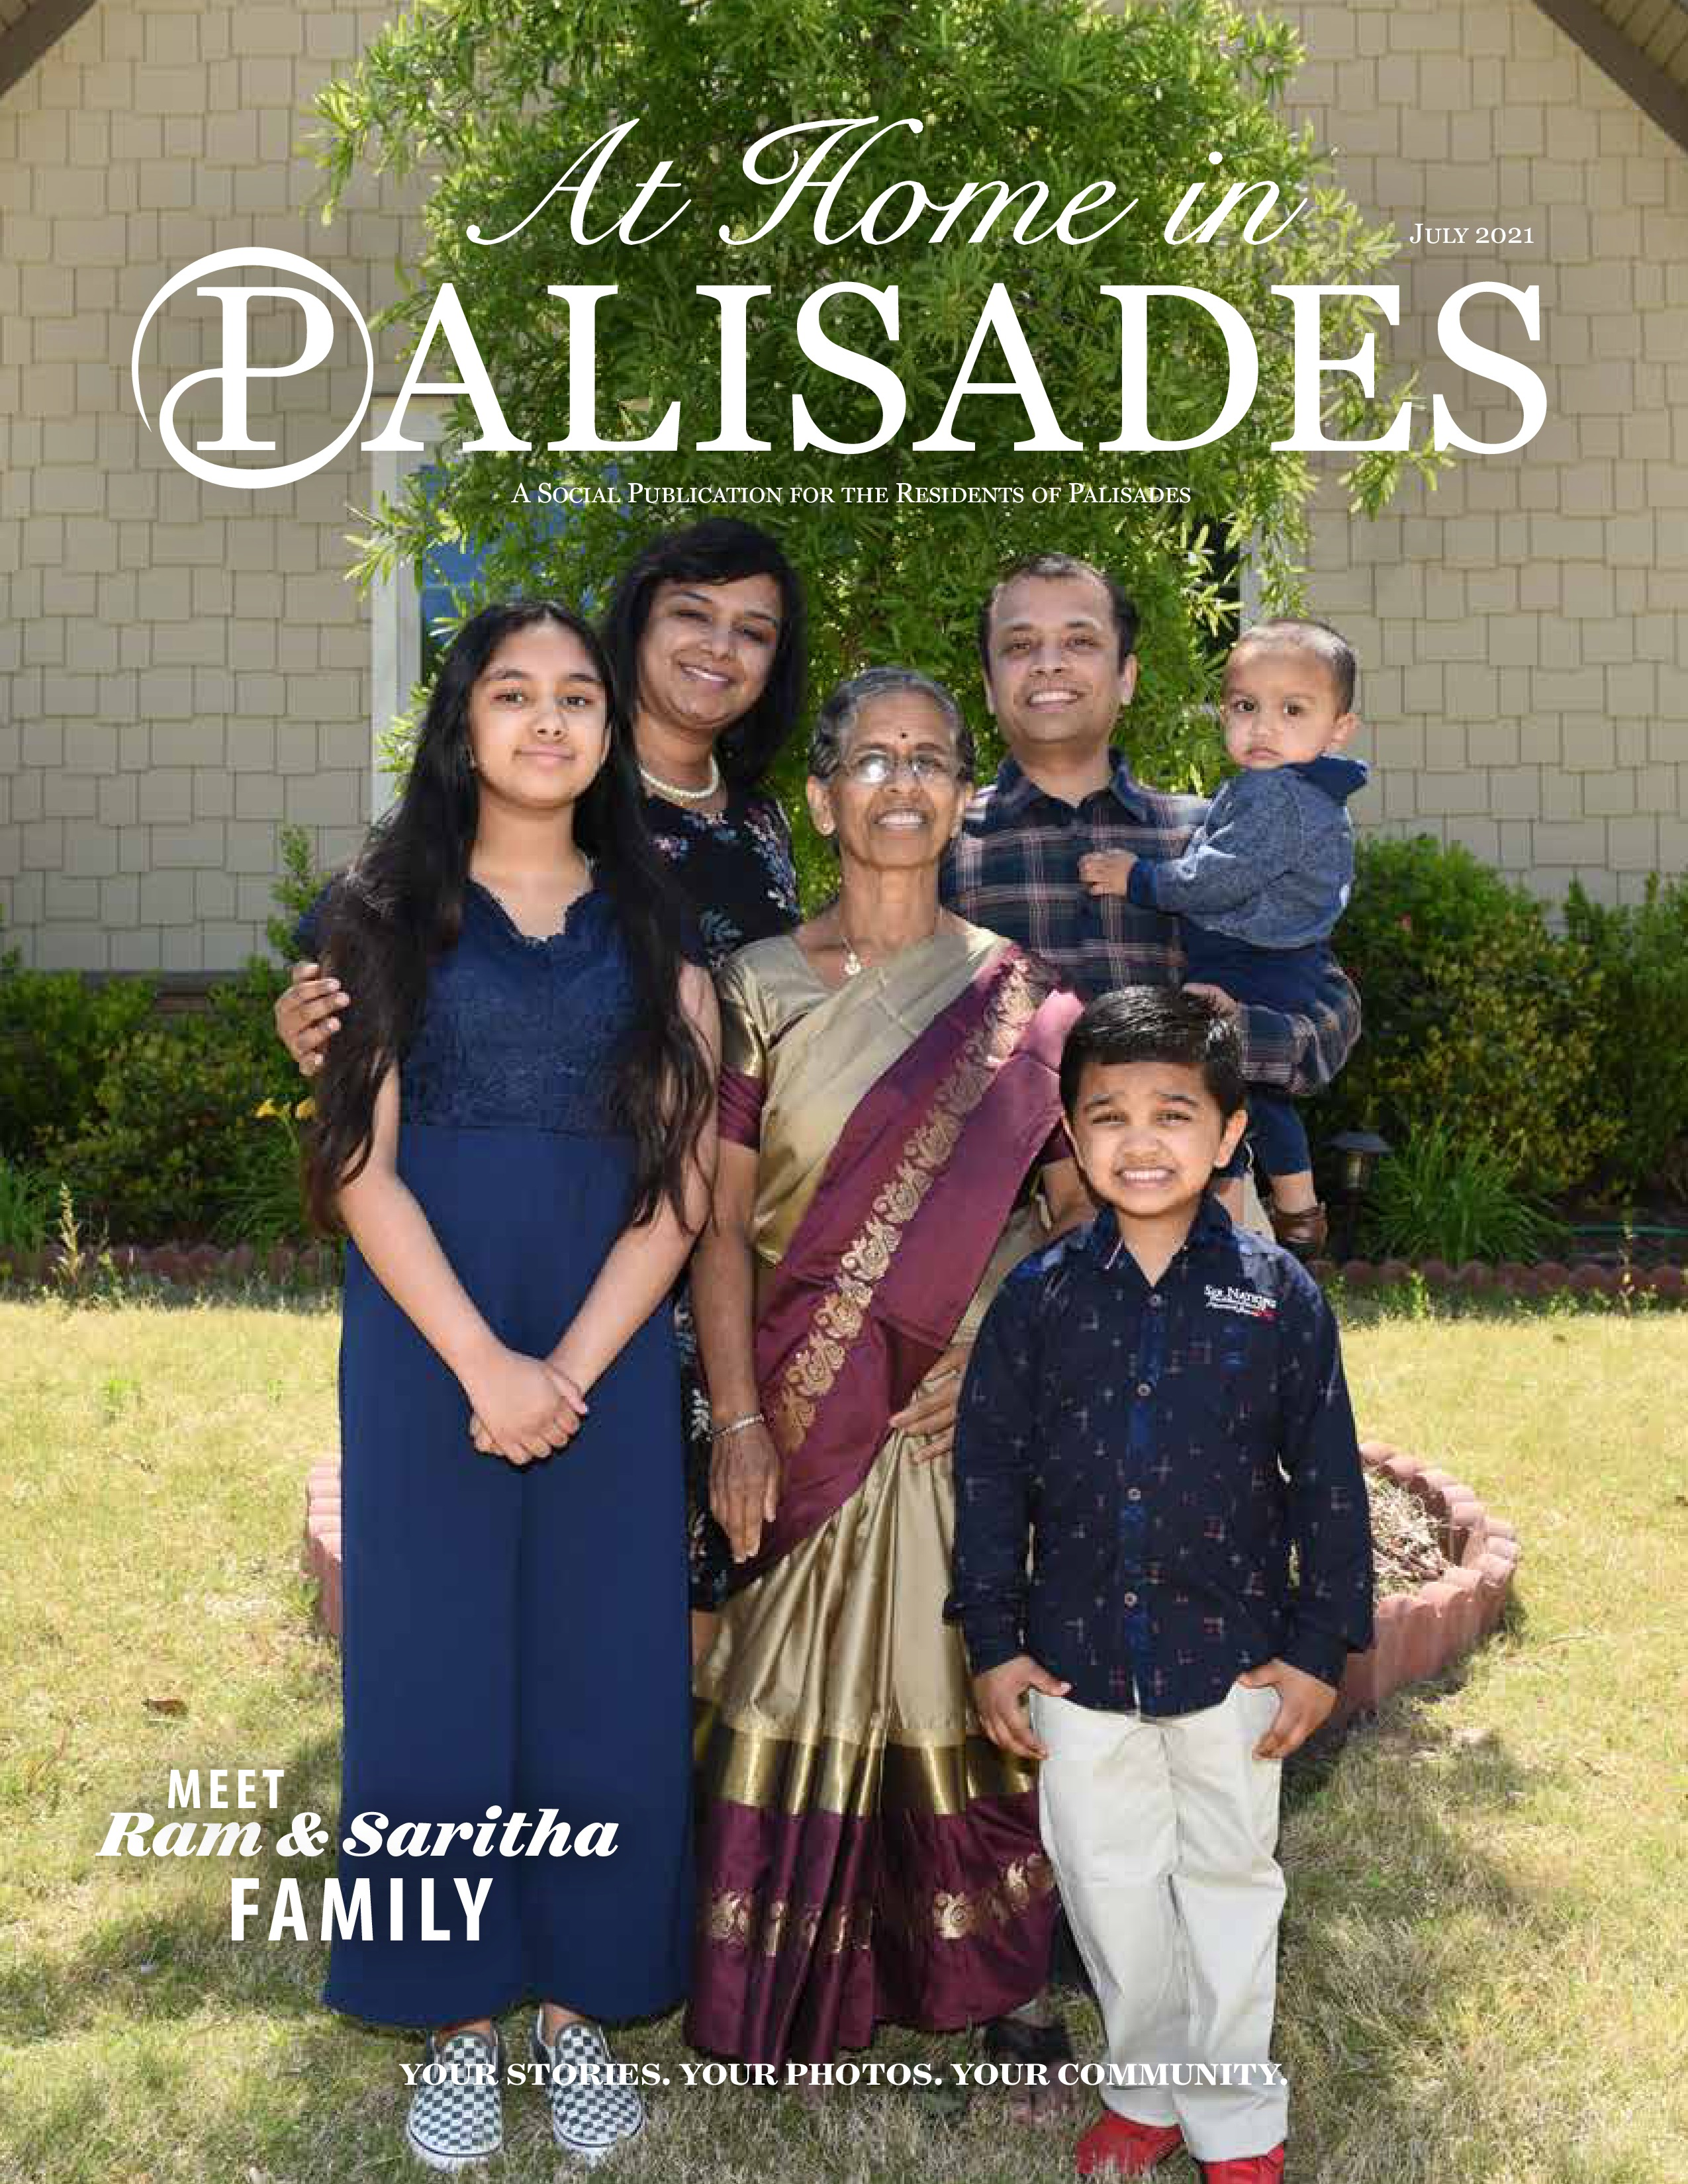 At Home in Palisades 2021-07-01